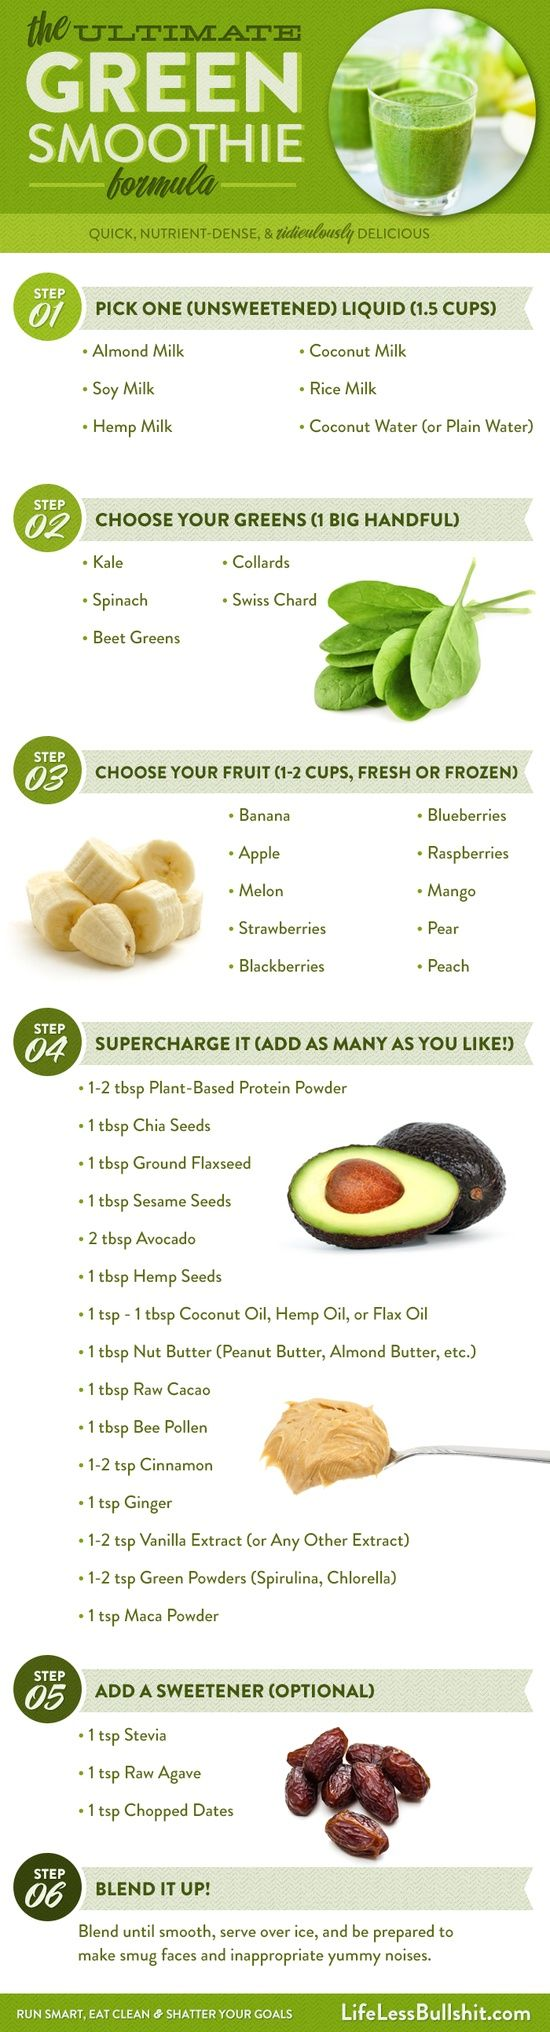 When I first was learning how to make green smoothies, this is the guide that I used!